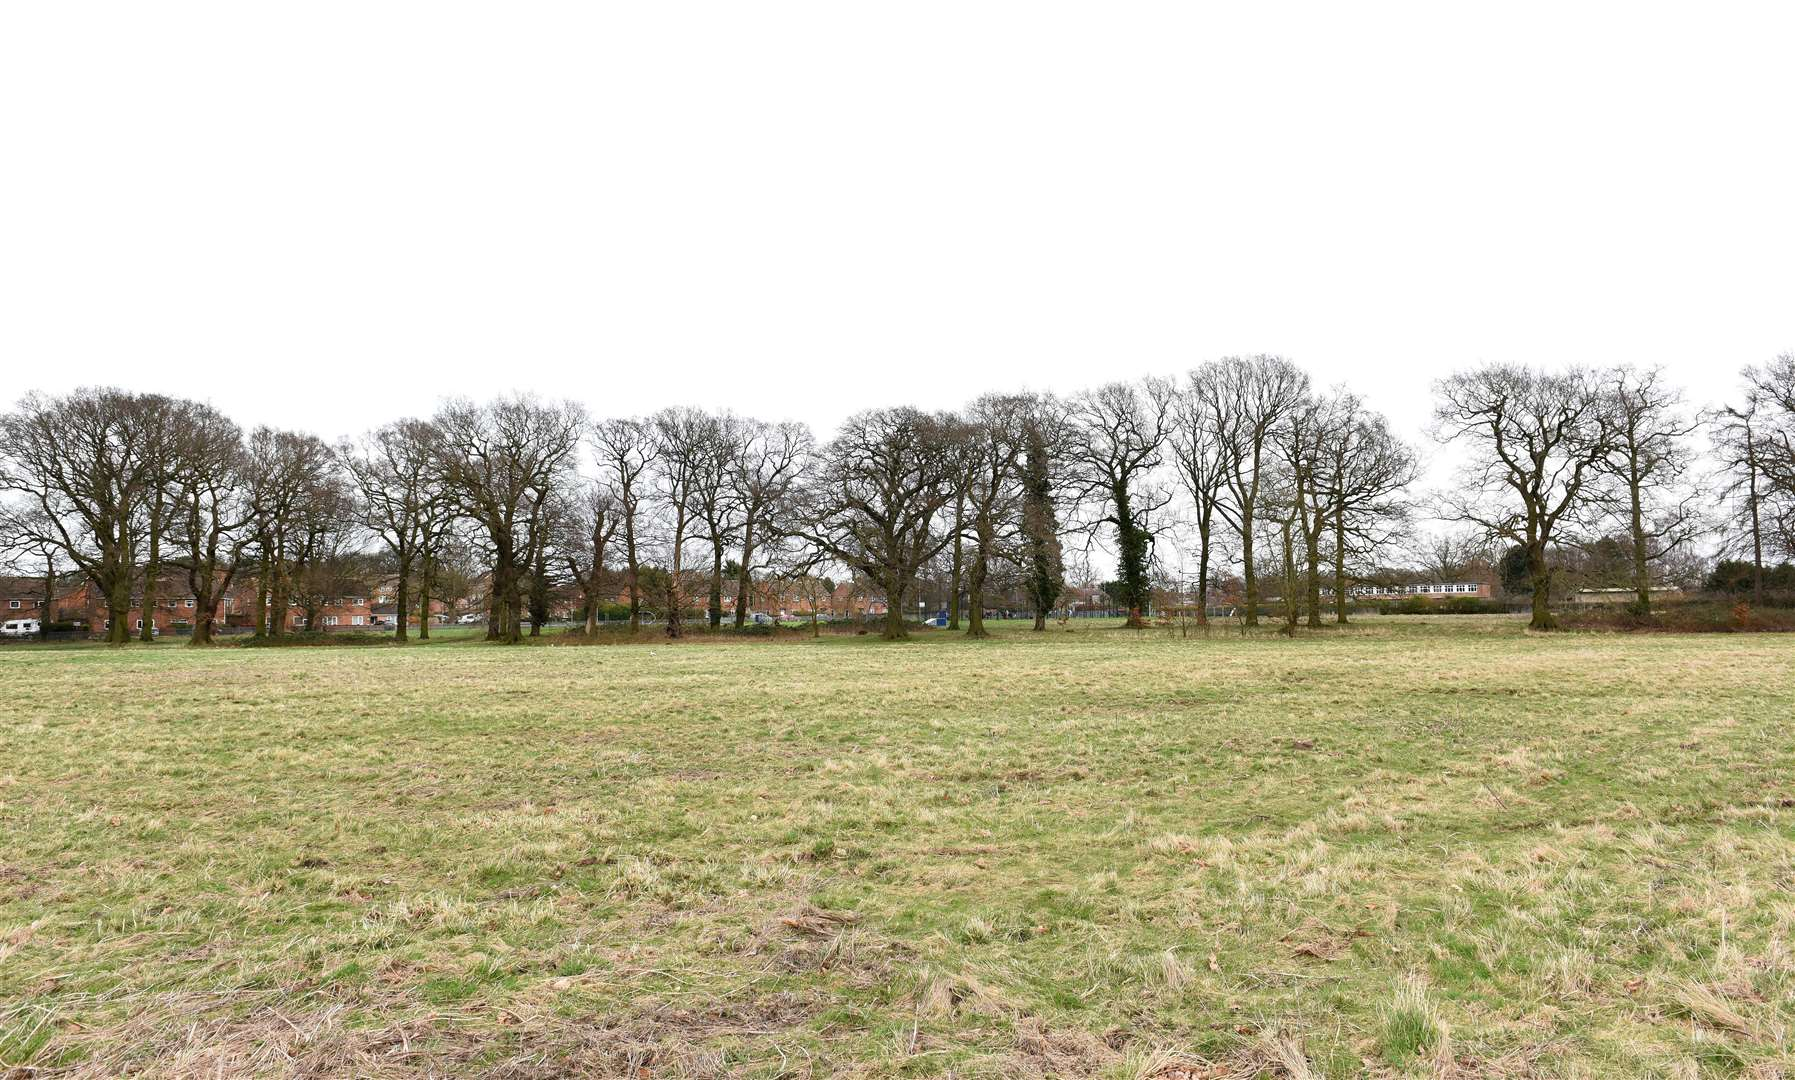 GV Picture of Land which is being Proposed for Possible New Housing Development for the Gaywood Area...Land next to the King's Lynn Academy Site off Queen Mary Road/Parkway Gaywood, looking towards the Play Area and Howard Junior School off Parkway. (29878329)